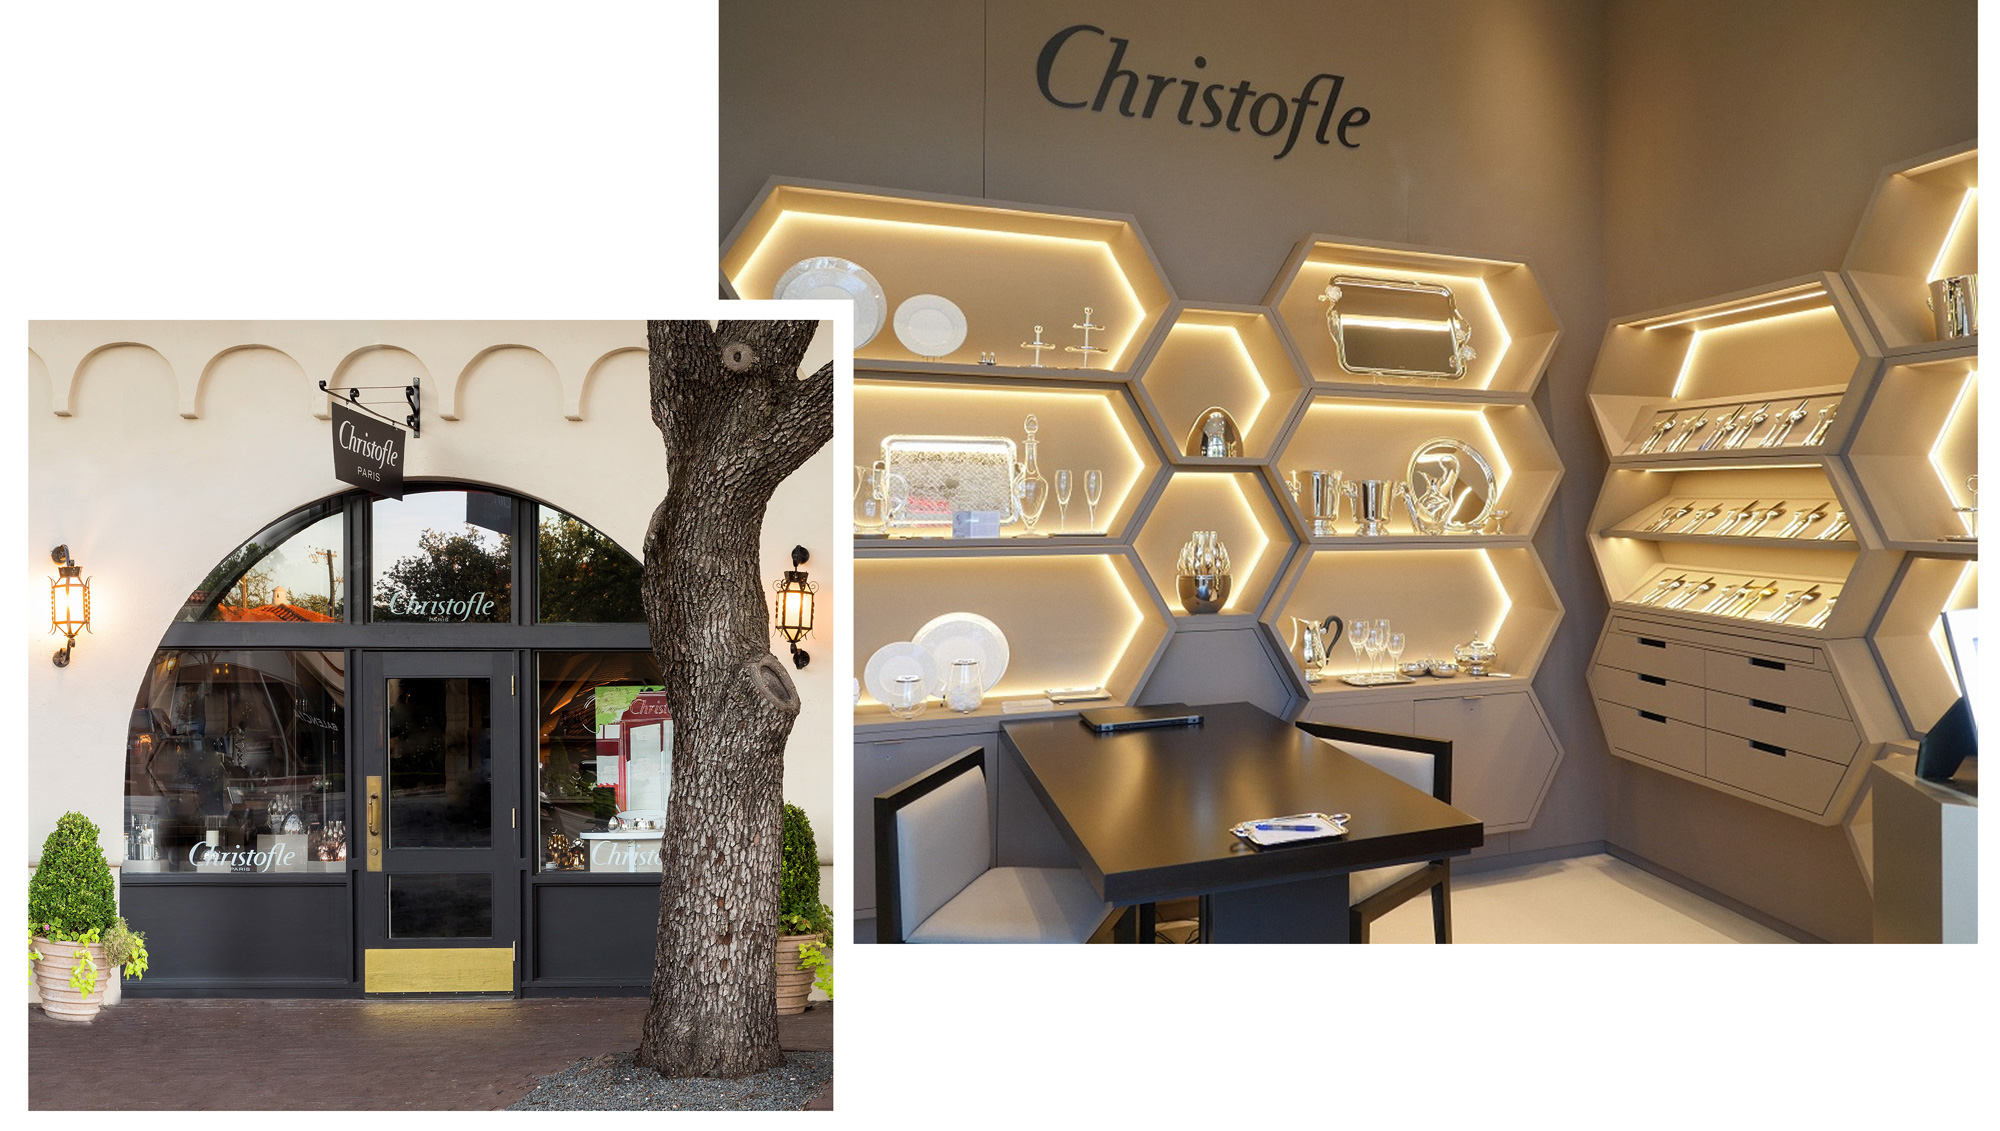 The Christofle boutique opened in Highland Park Village in 2016 and is the second location in Texas.